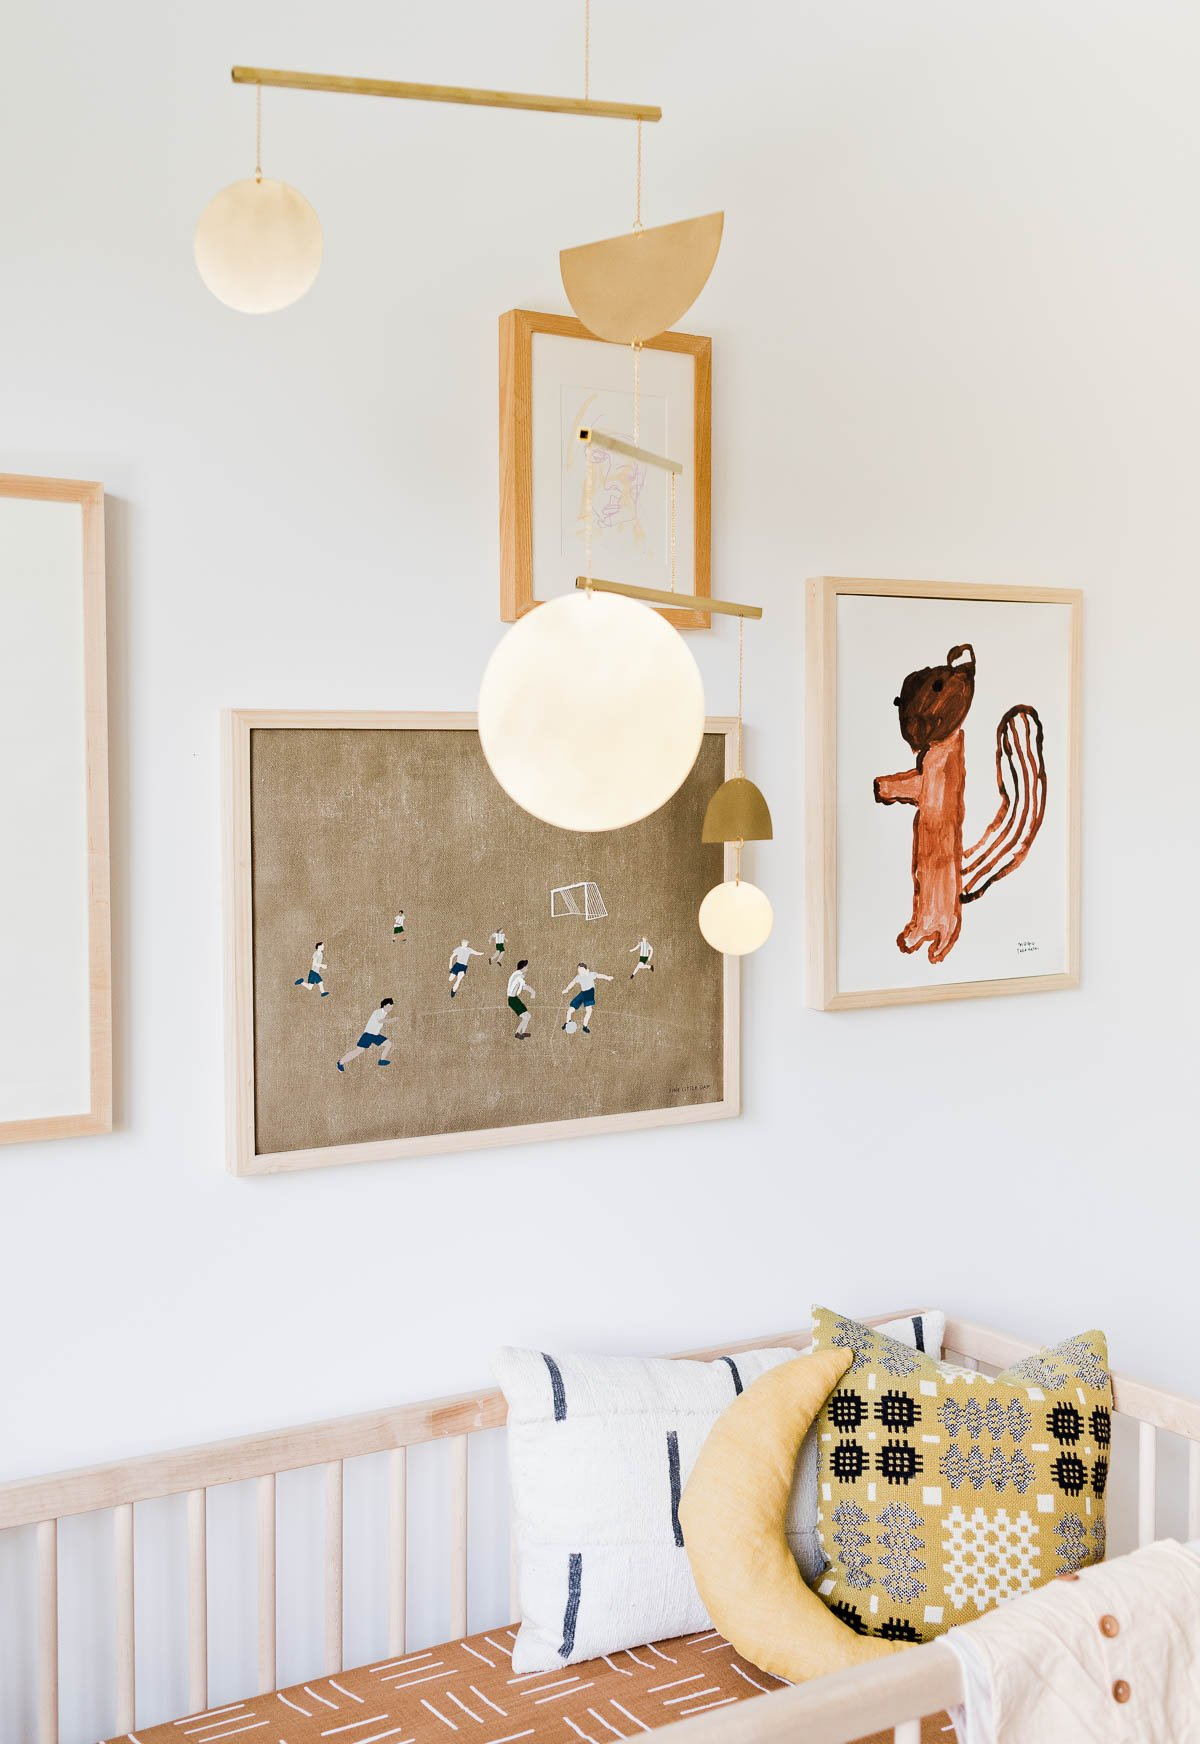 Gallery wall of artwork hanging over modern crib in a neutral nursery.